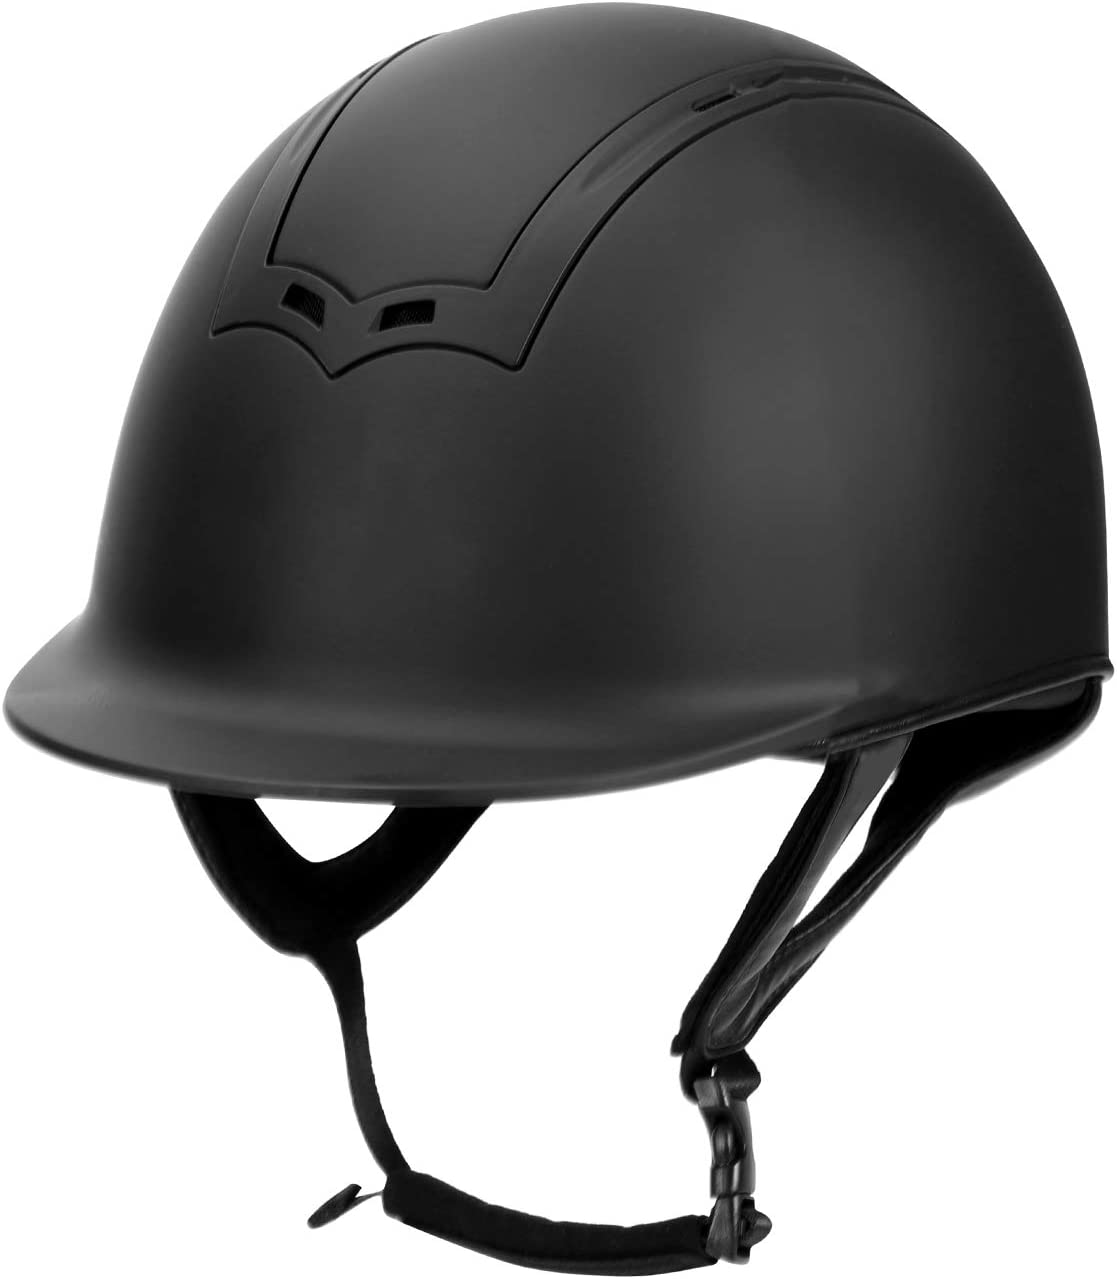 Free shipping / New TuffRider Show Time Horse Riding Gear Fresno Mall f Helmet Head Protective